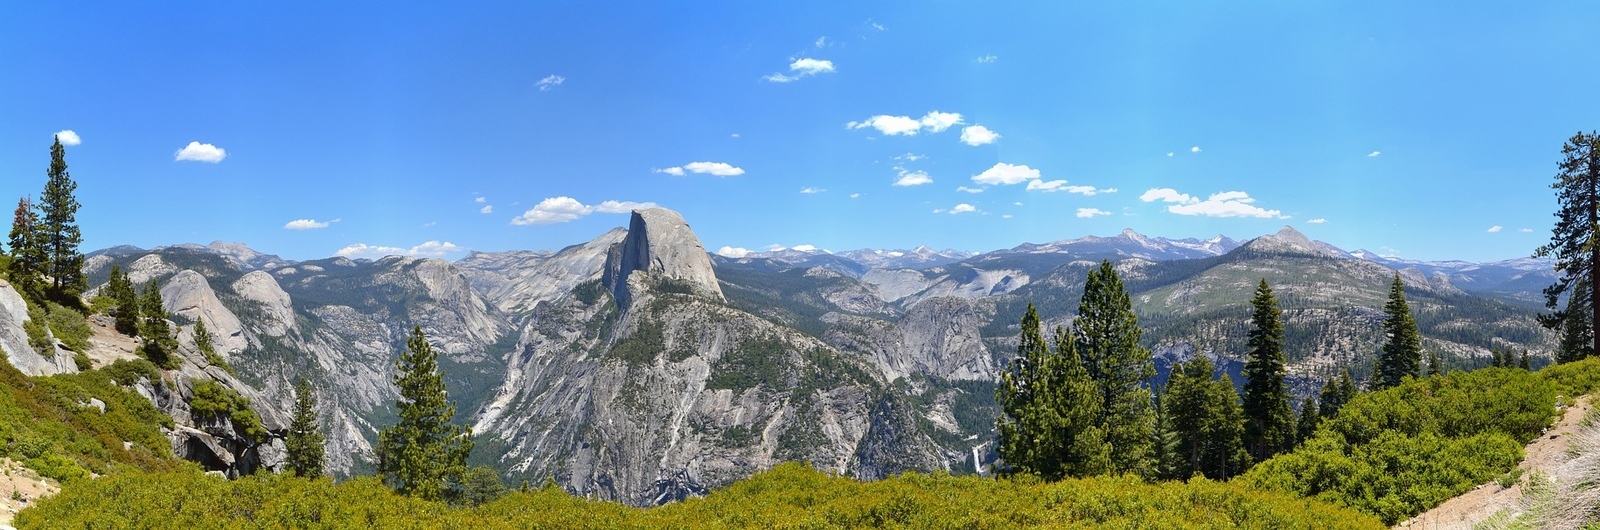 yosemite national park city header